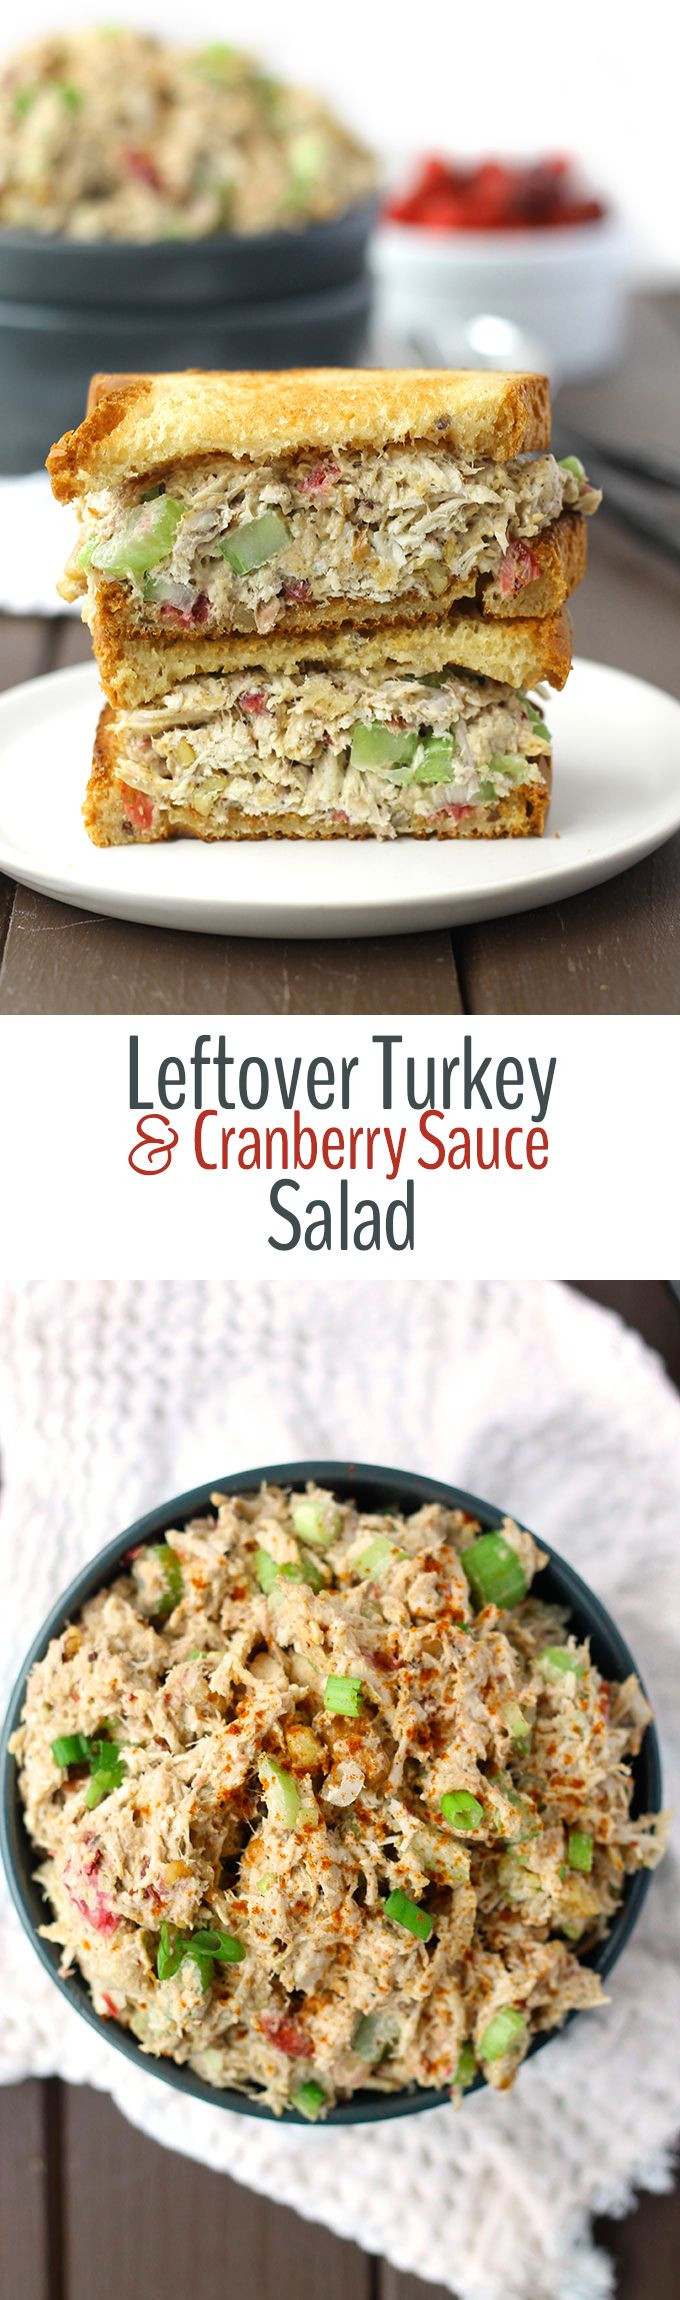 Cold Salads For Thanksgiving  Leftover Turkey and Cranberry Sauce Salad